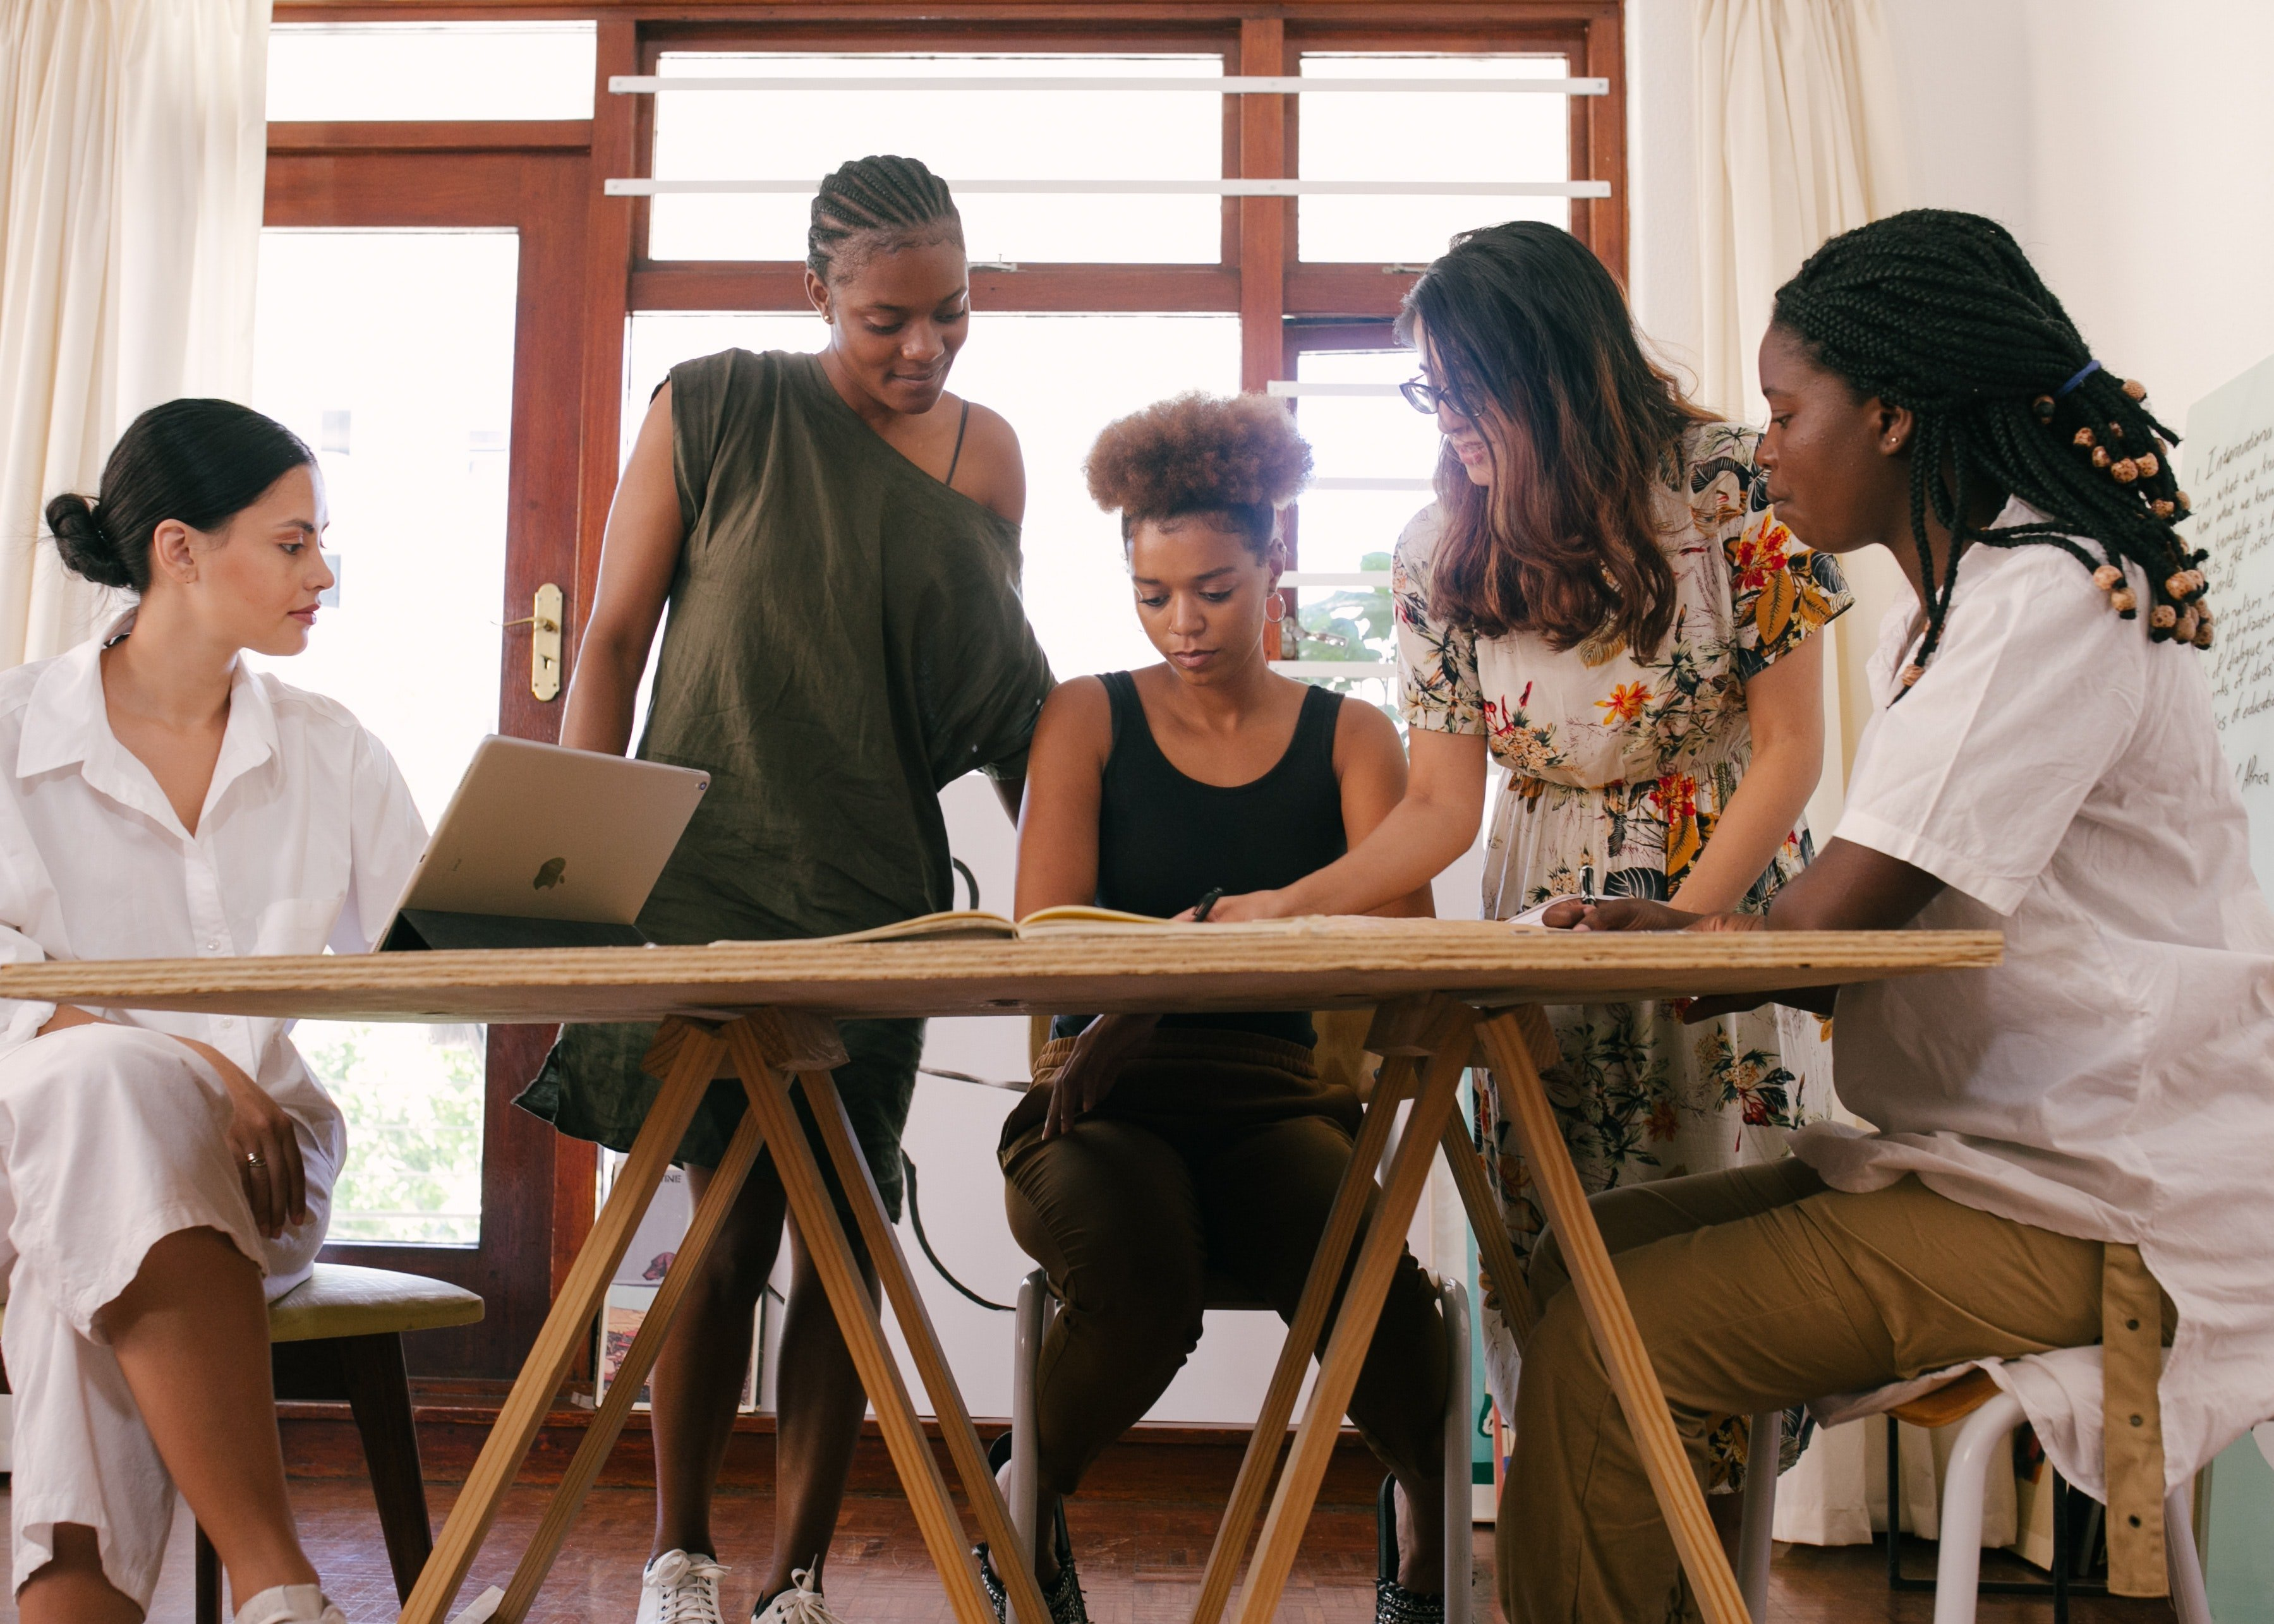 How Your Interests, Skills, and Values Should Match Your Future Career